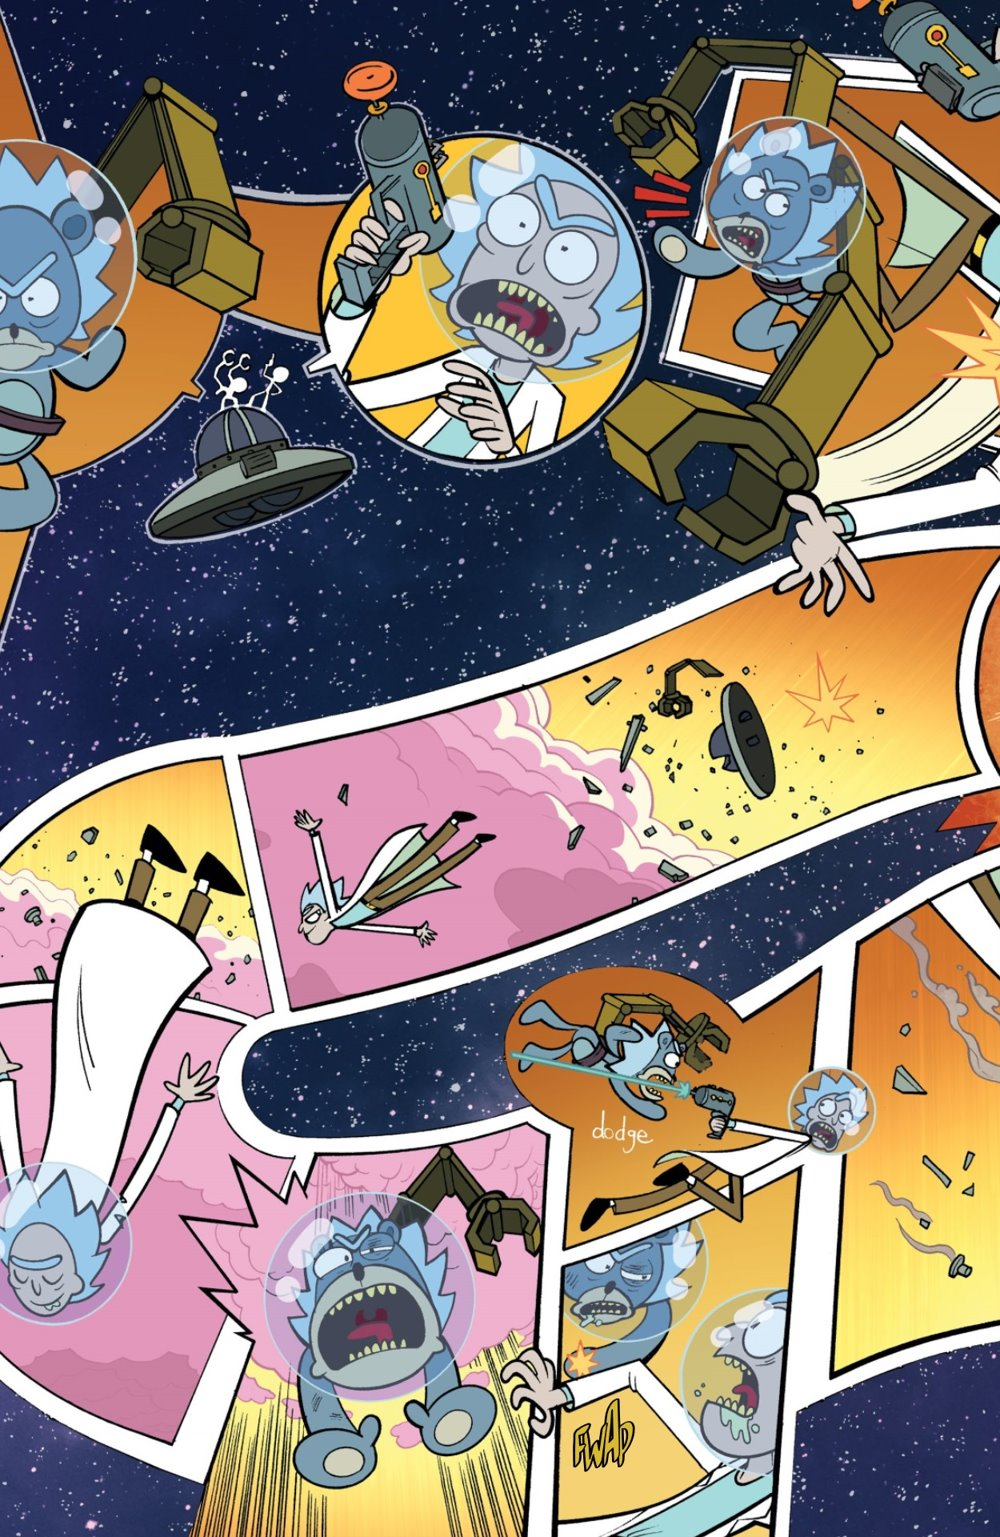 RICKMORTY-WORLDSAPART-2-REFERENCE-05 ComicList Previews: RICK AND MORTY WORLDS APART #2